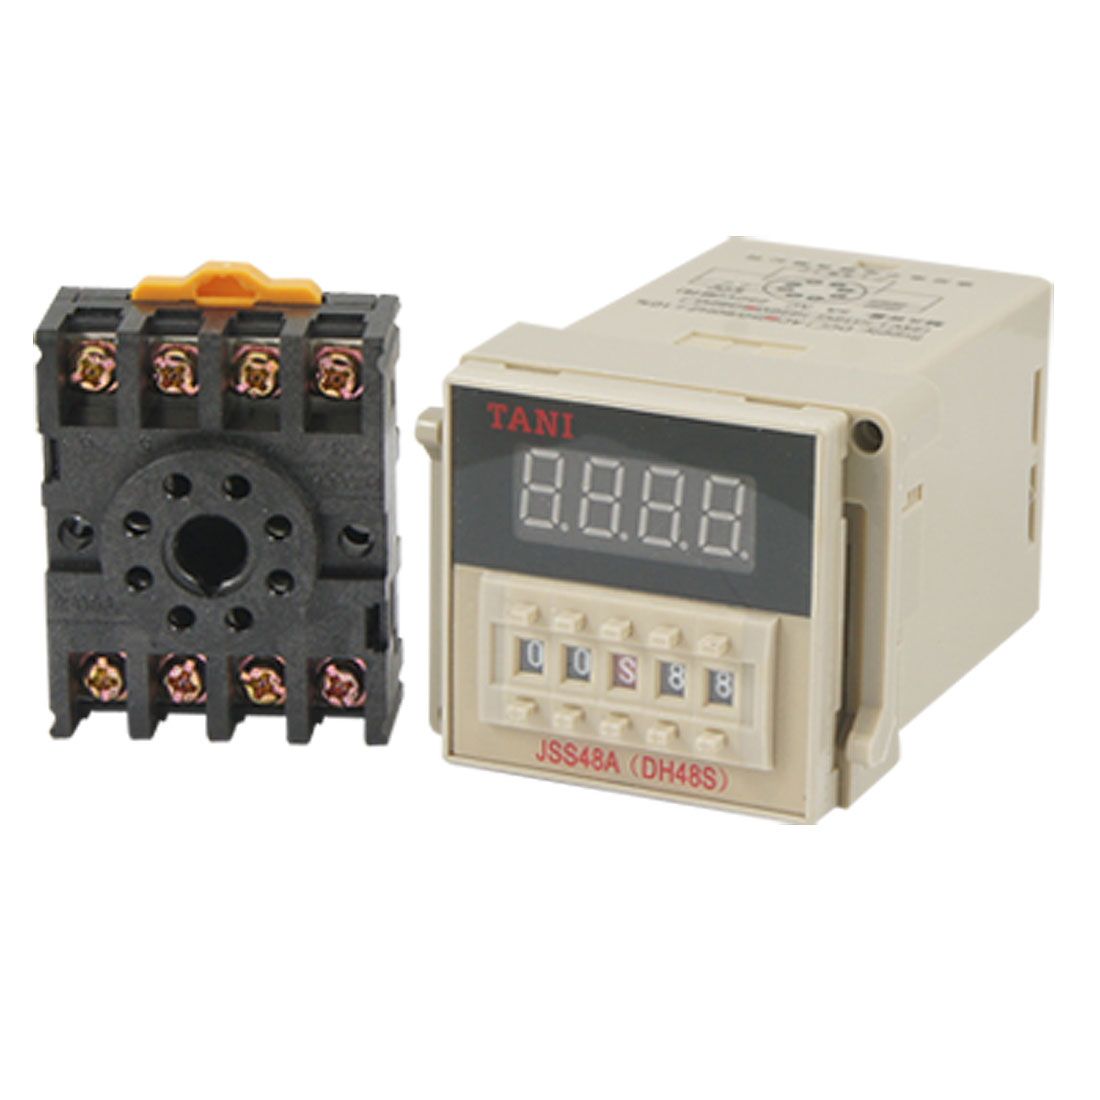 AC 220V Programmable 1S-99H Range Time Delay Relay Counter